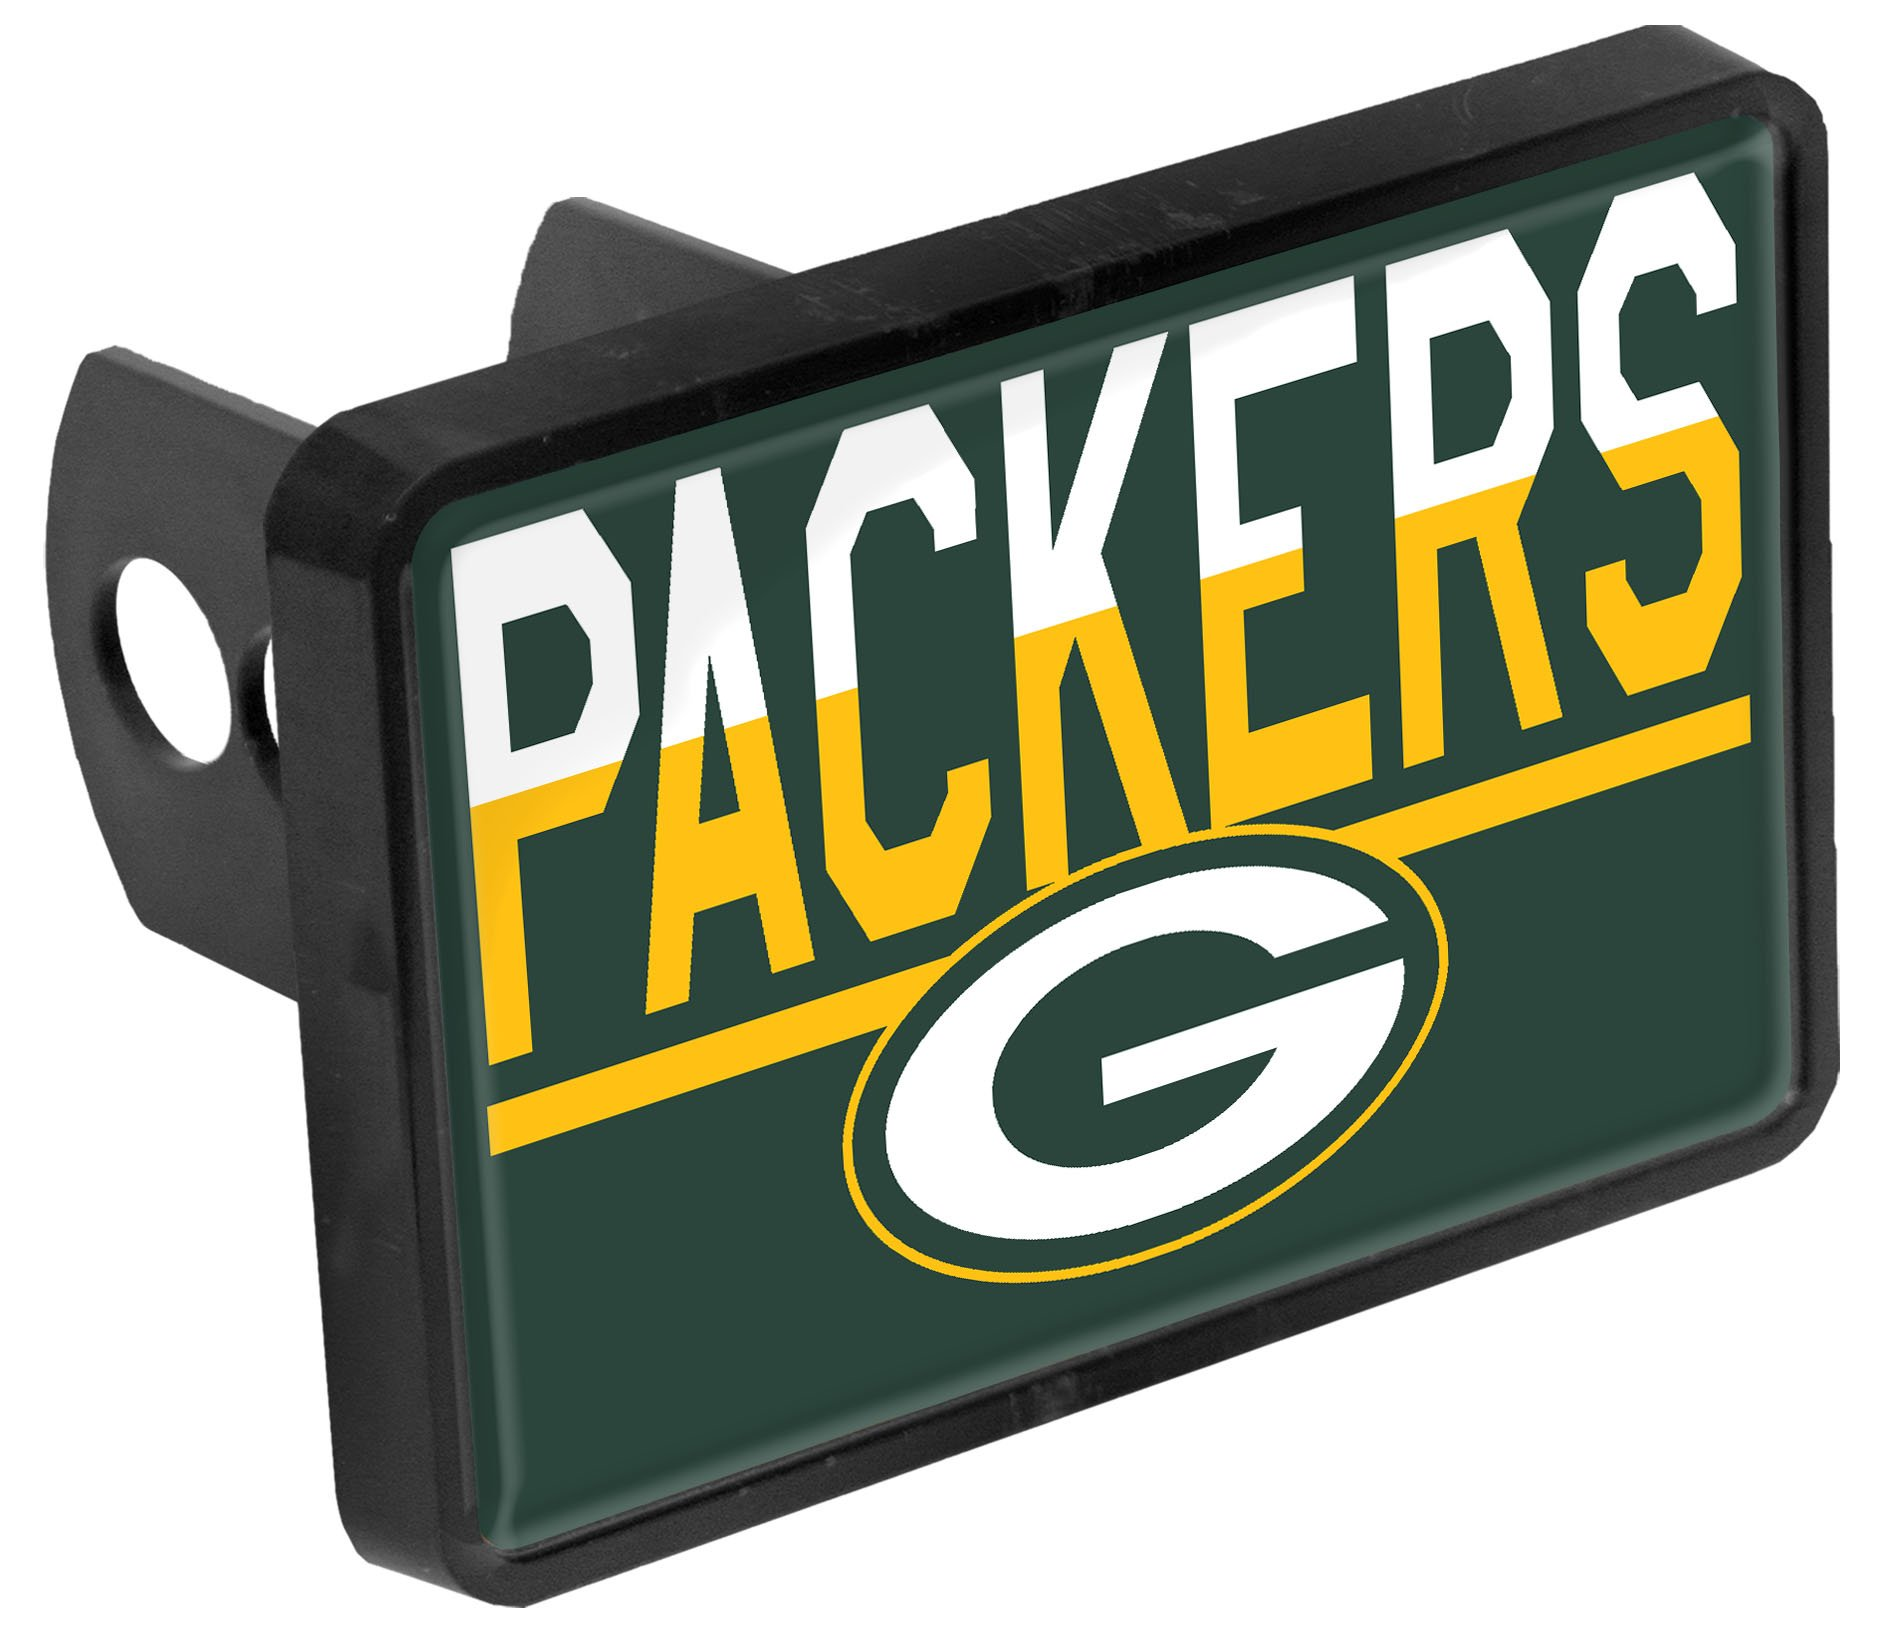 Stockdale Green Bay Packers Color Duo Tone Universal Hitch Bumper Trailer Cover Football by Stockdale